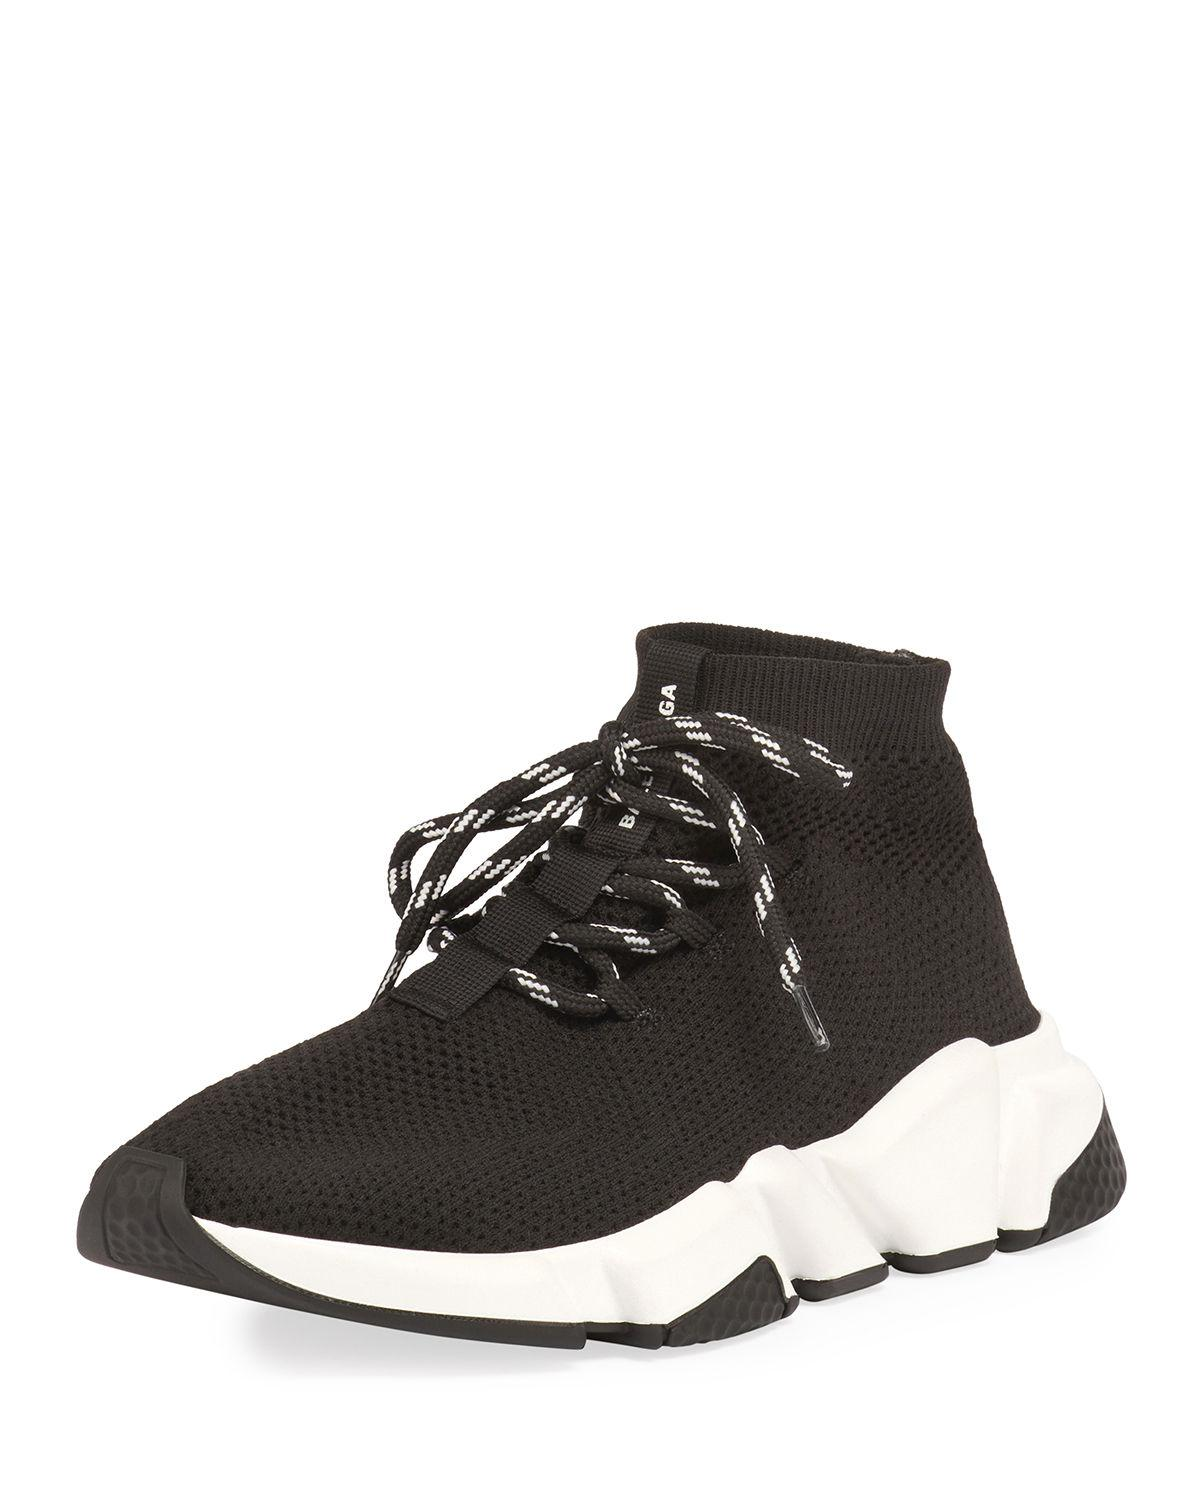 0551362b19597 Lyst - Balenciaga Speed Lace-up Knit Trainer in Black